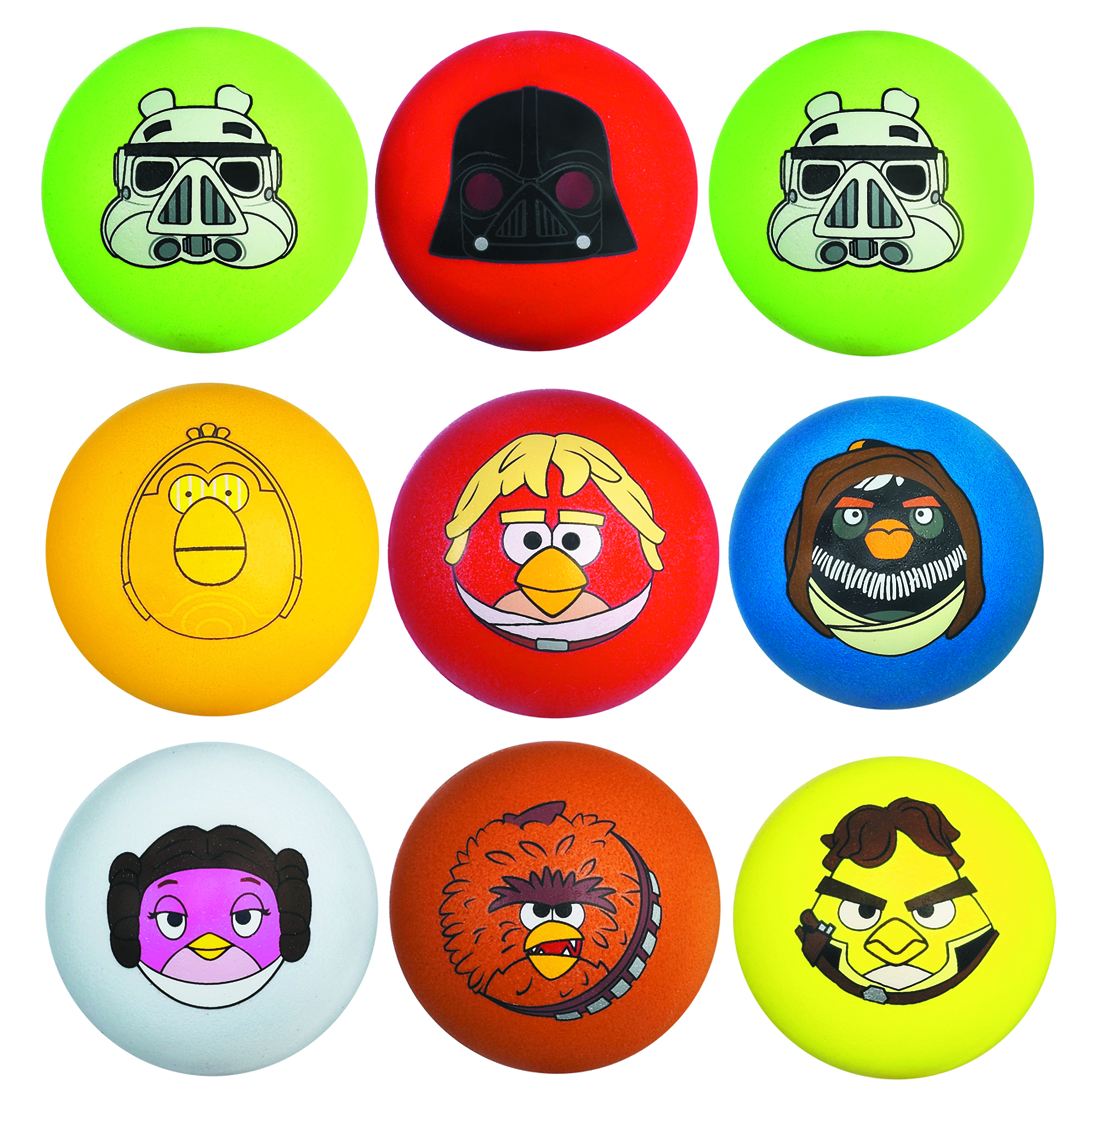 STAR WARS ANGRY BIRDS KOOSH BALL REFILL ASST